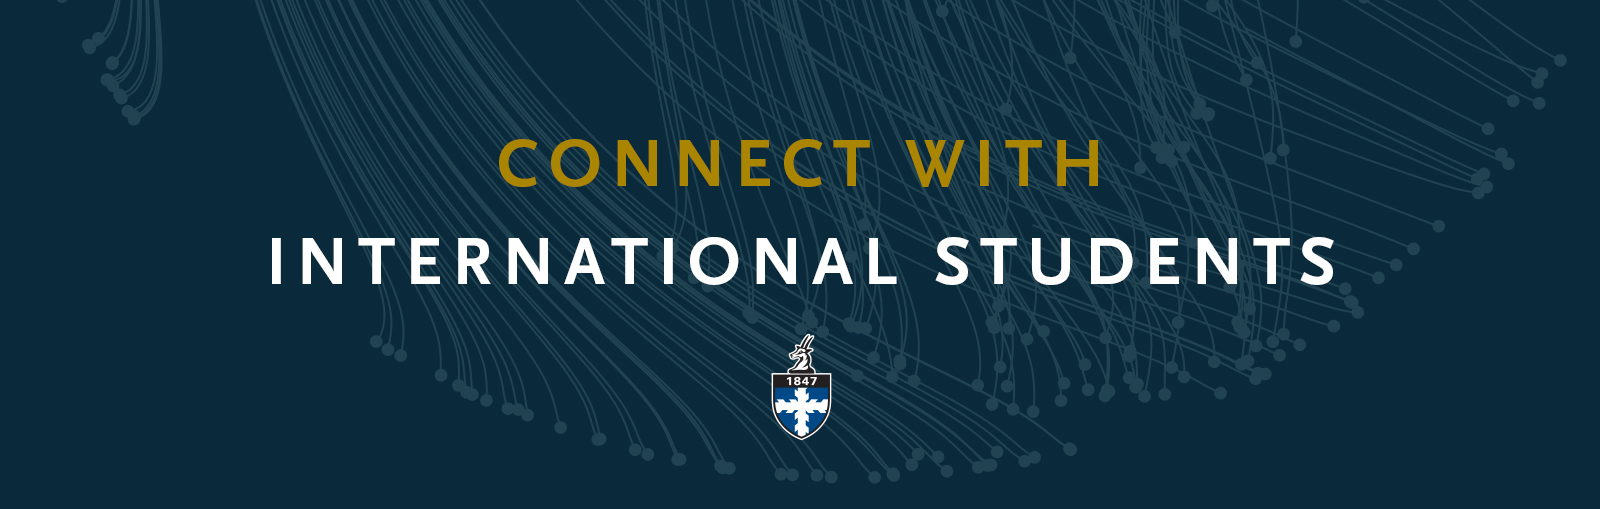 "Banner that reads ""Connect with International Students"""